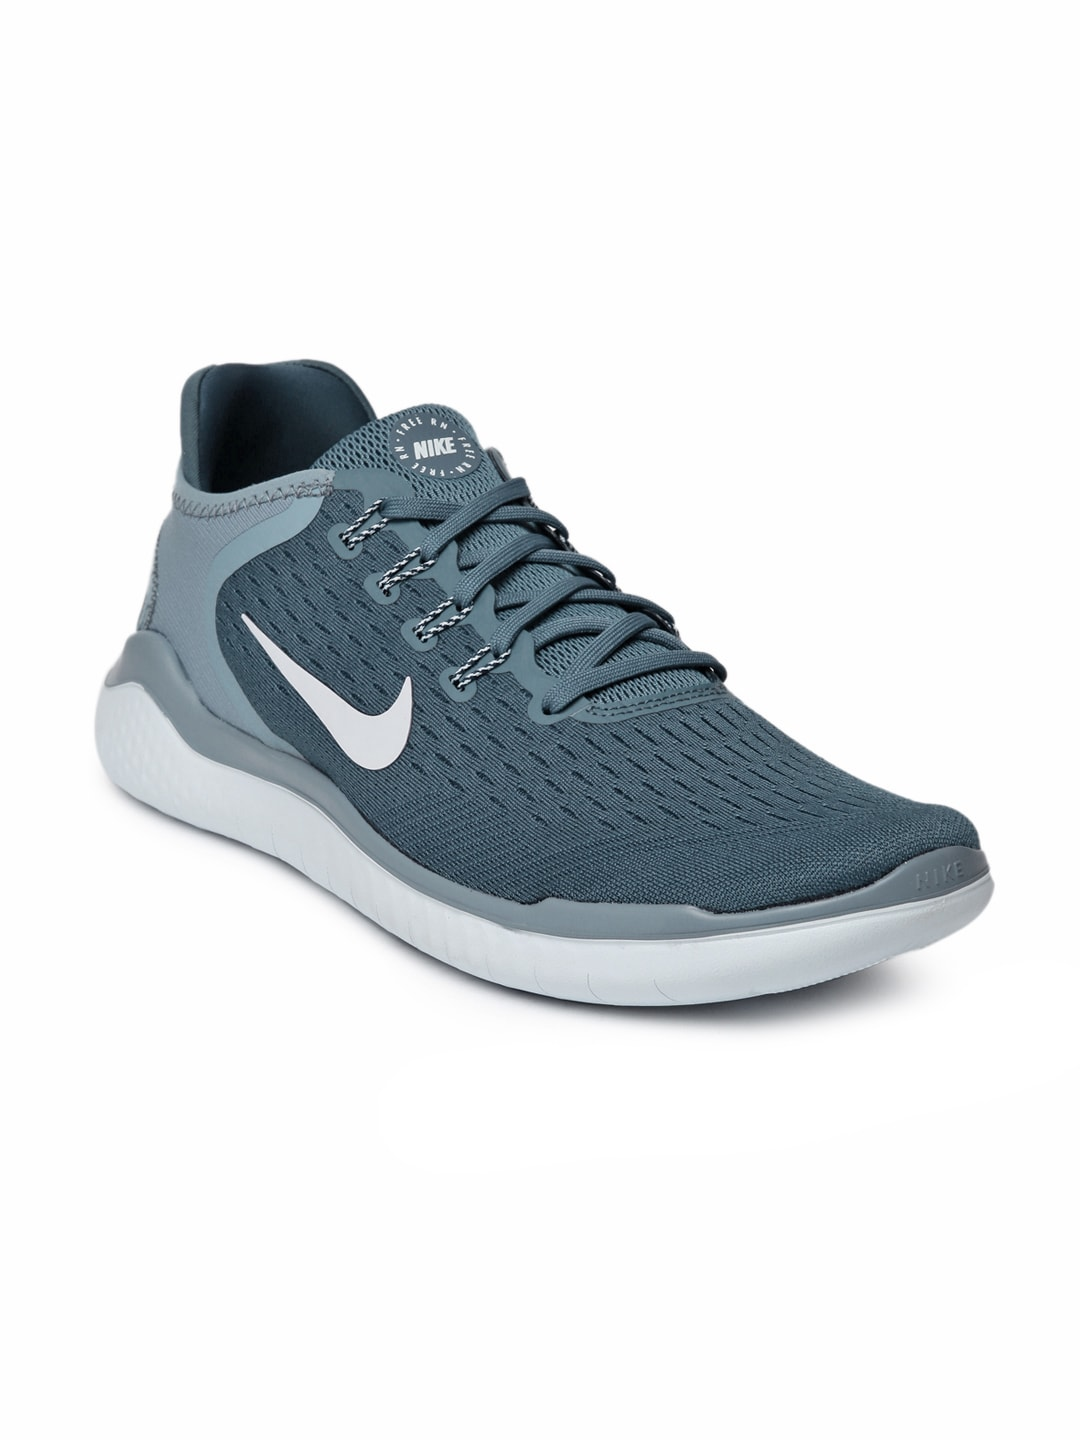 Nike Free Running Shoes - Buy Nike Free Running Shoes online in India 3b67fac2d